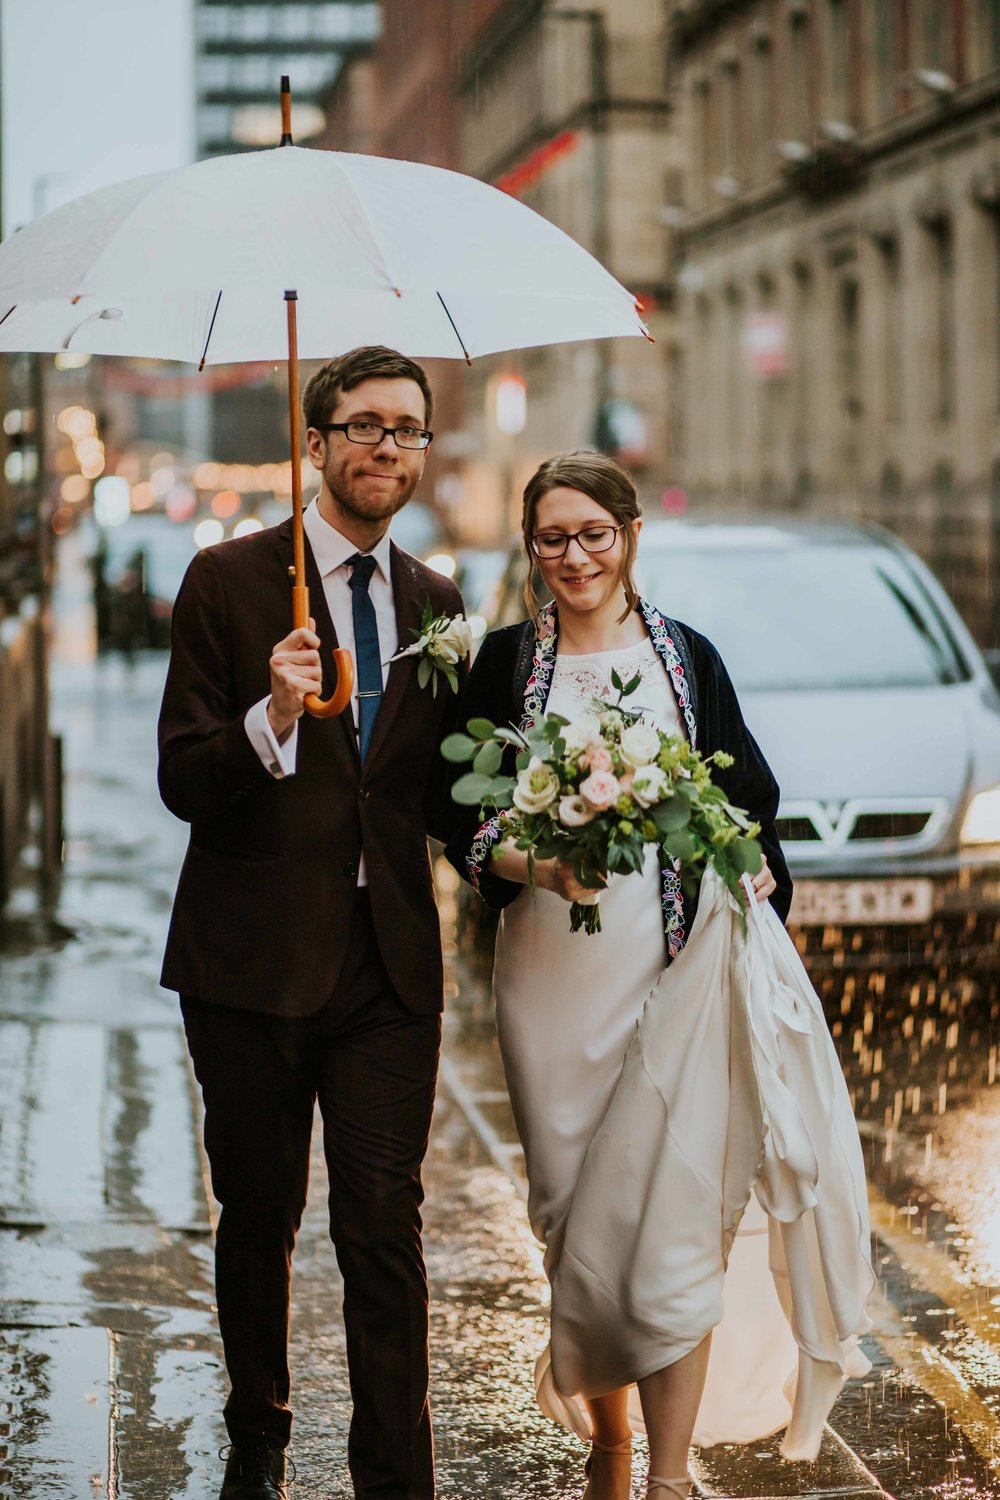 A rainy wedding in Manchester